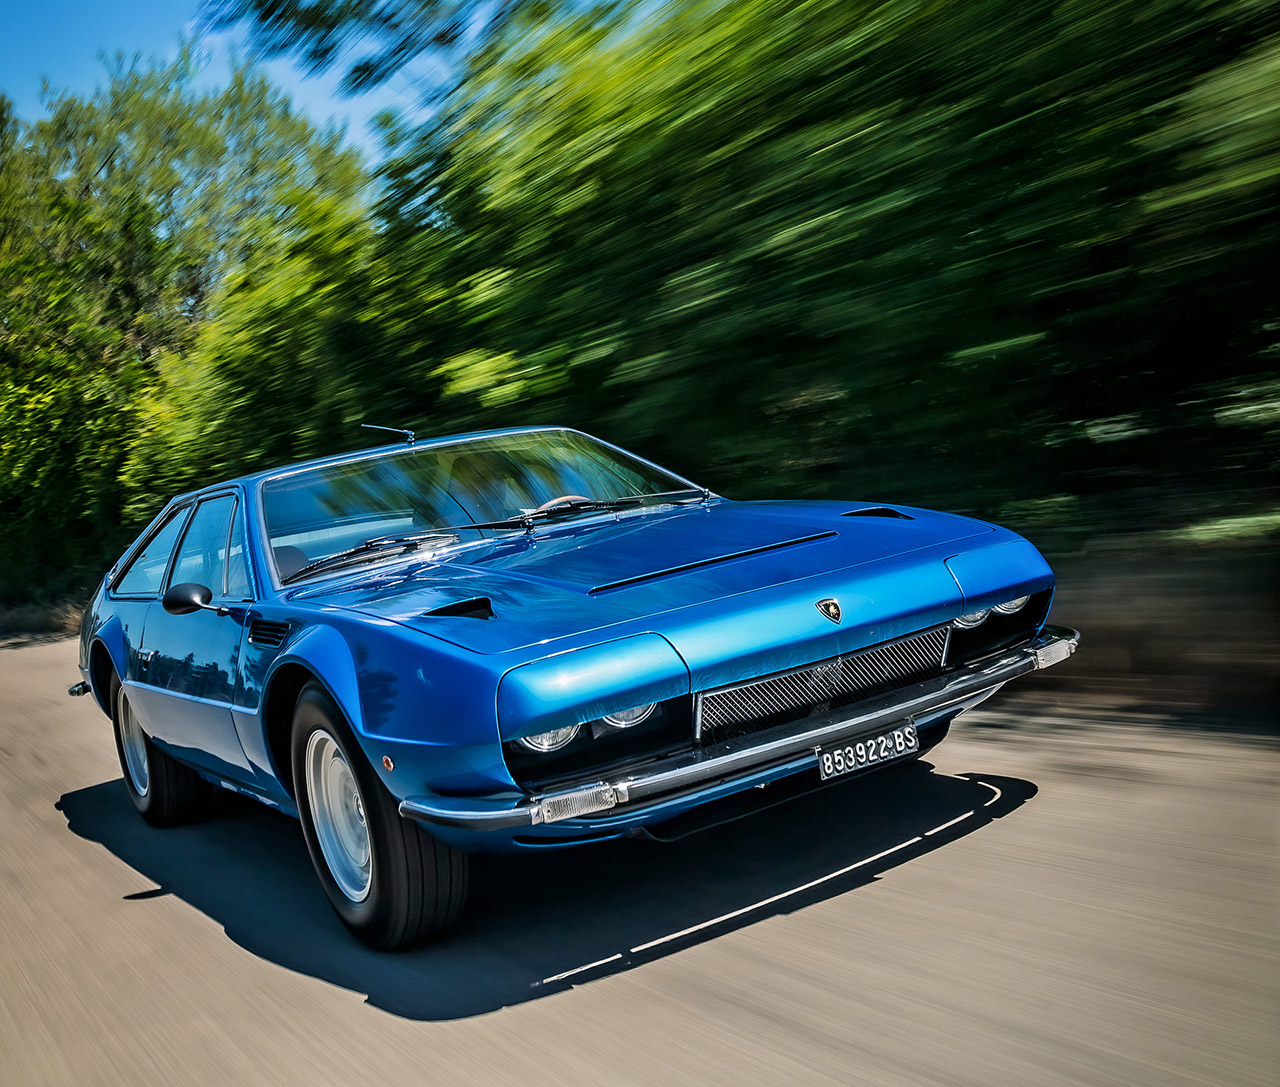 Up-Close Look At The Lamborghini Jarama, The Company's